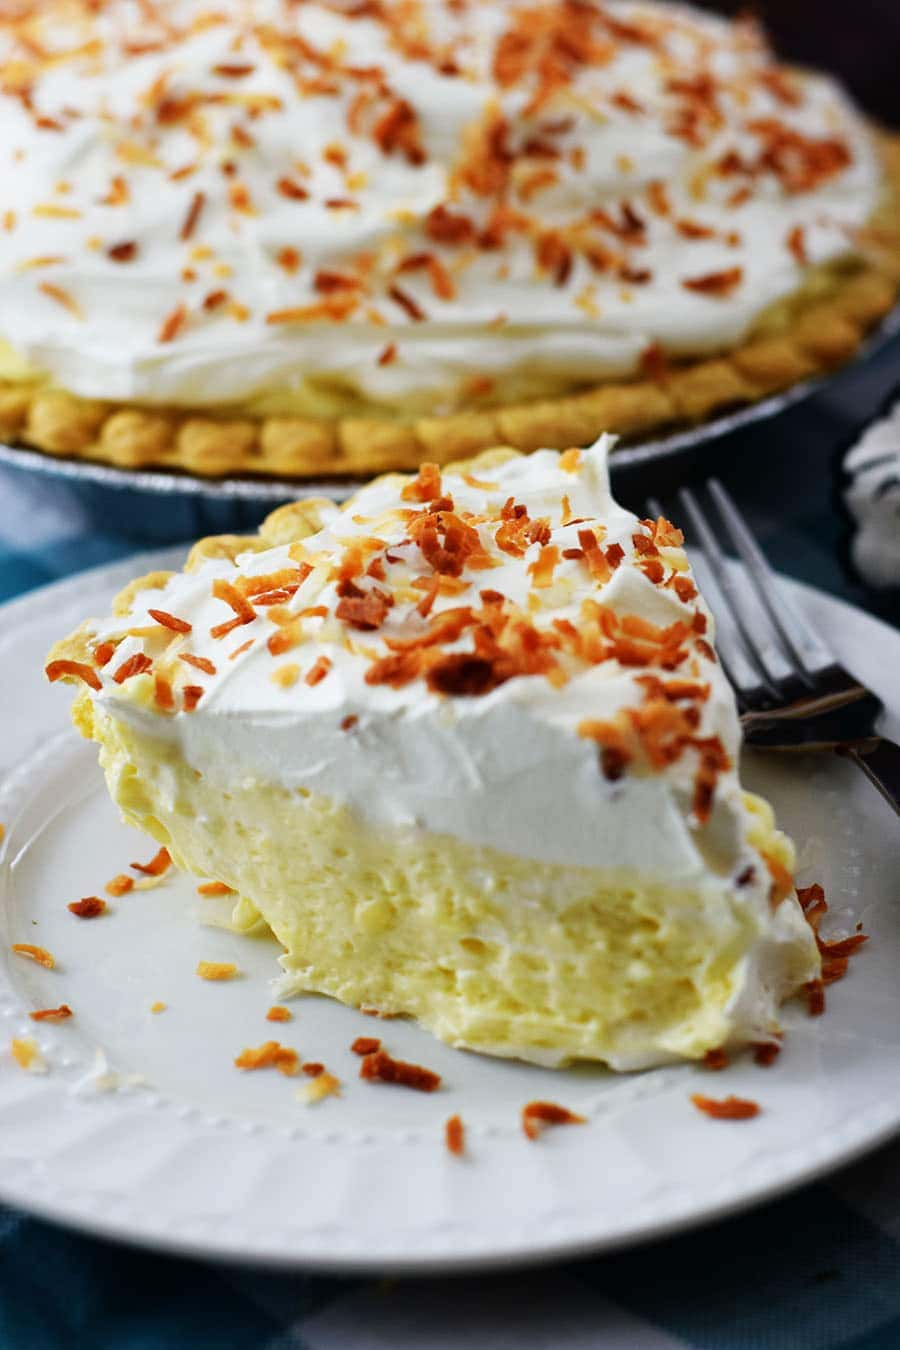 Slice of Coconut Cream Pie on White Plate with Toasted Coconut on Top